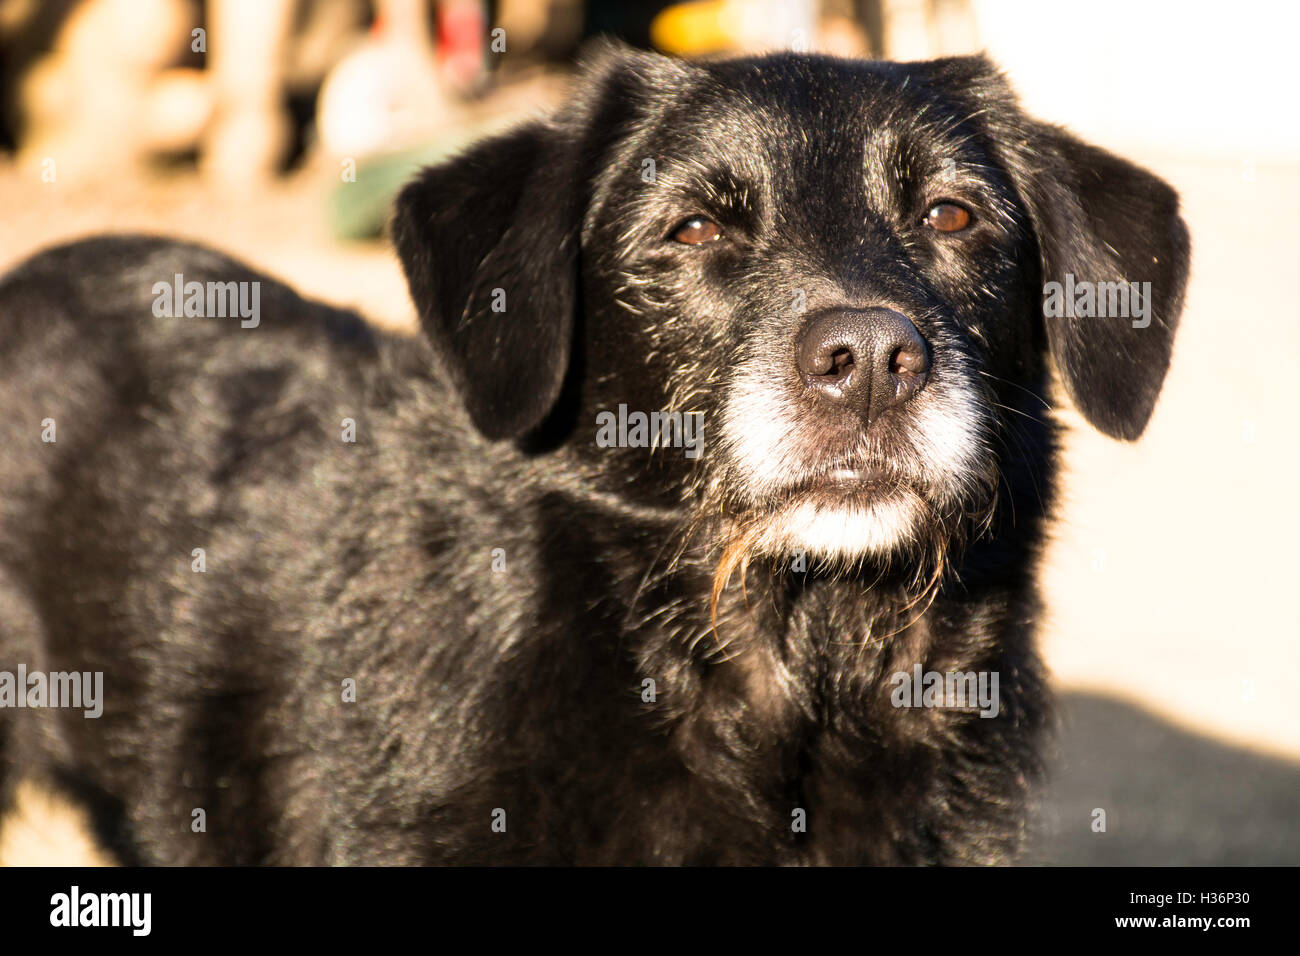 old family dog looking straight at camera - Stock Image